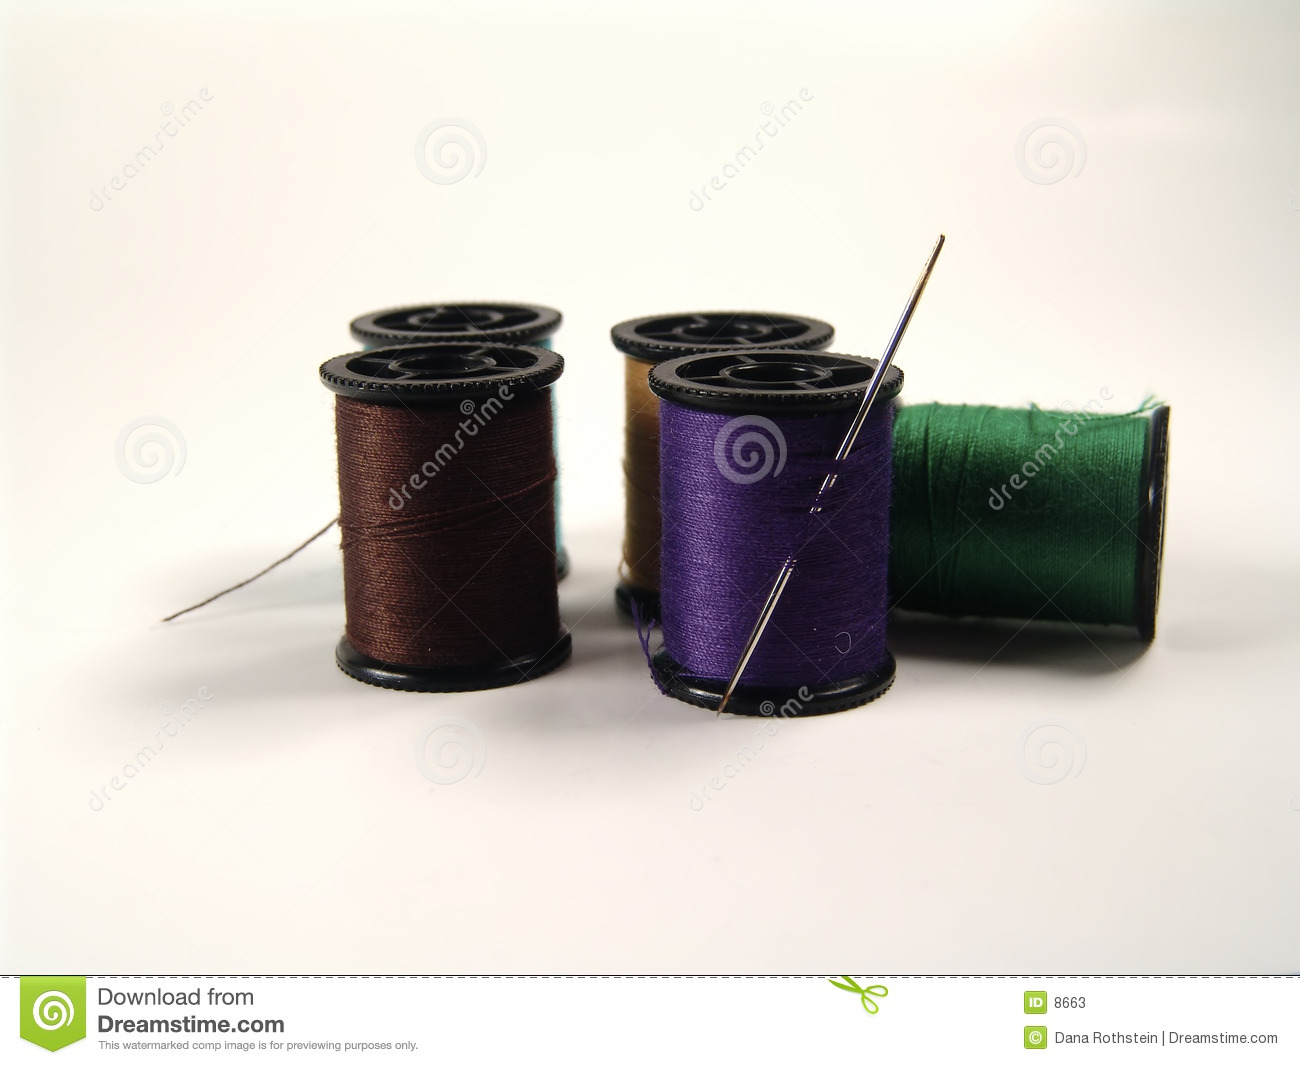 Colored Spools and Needle